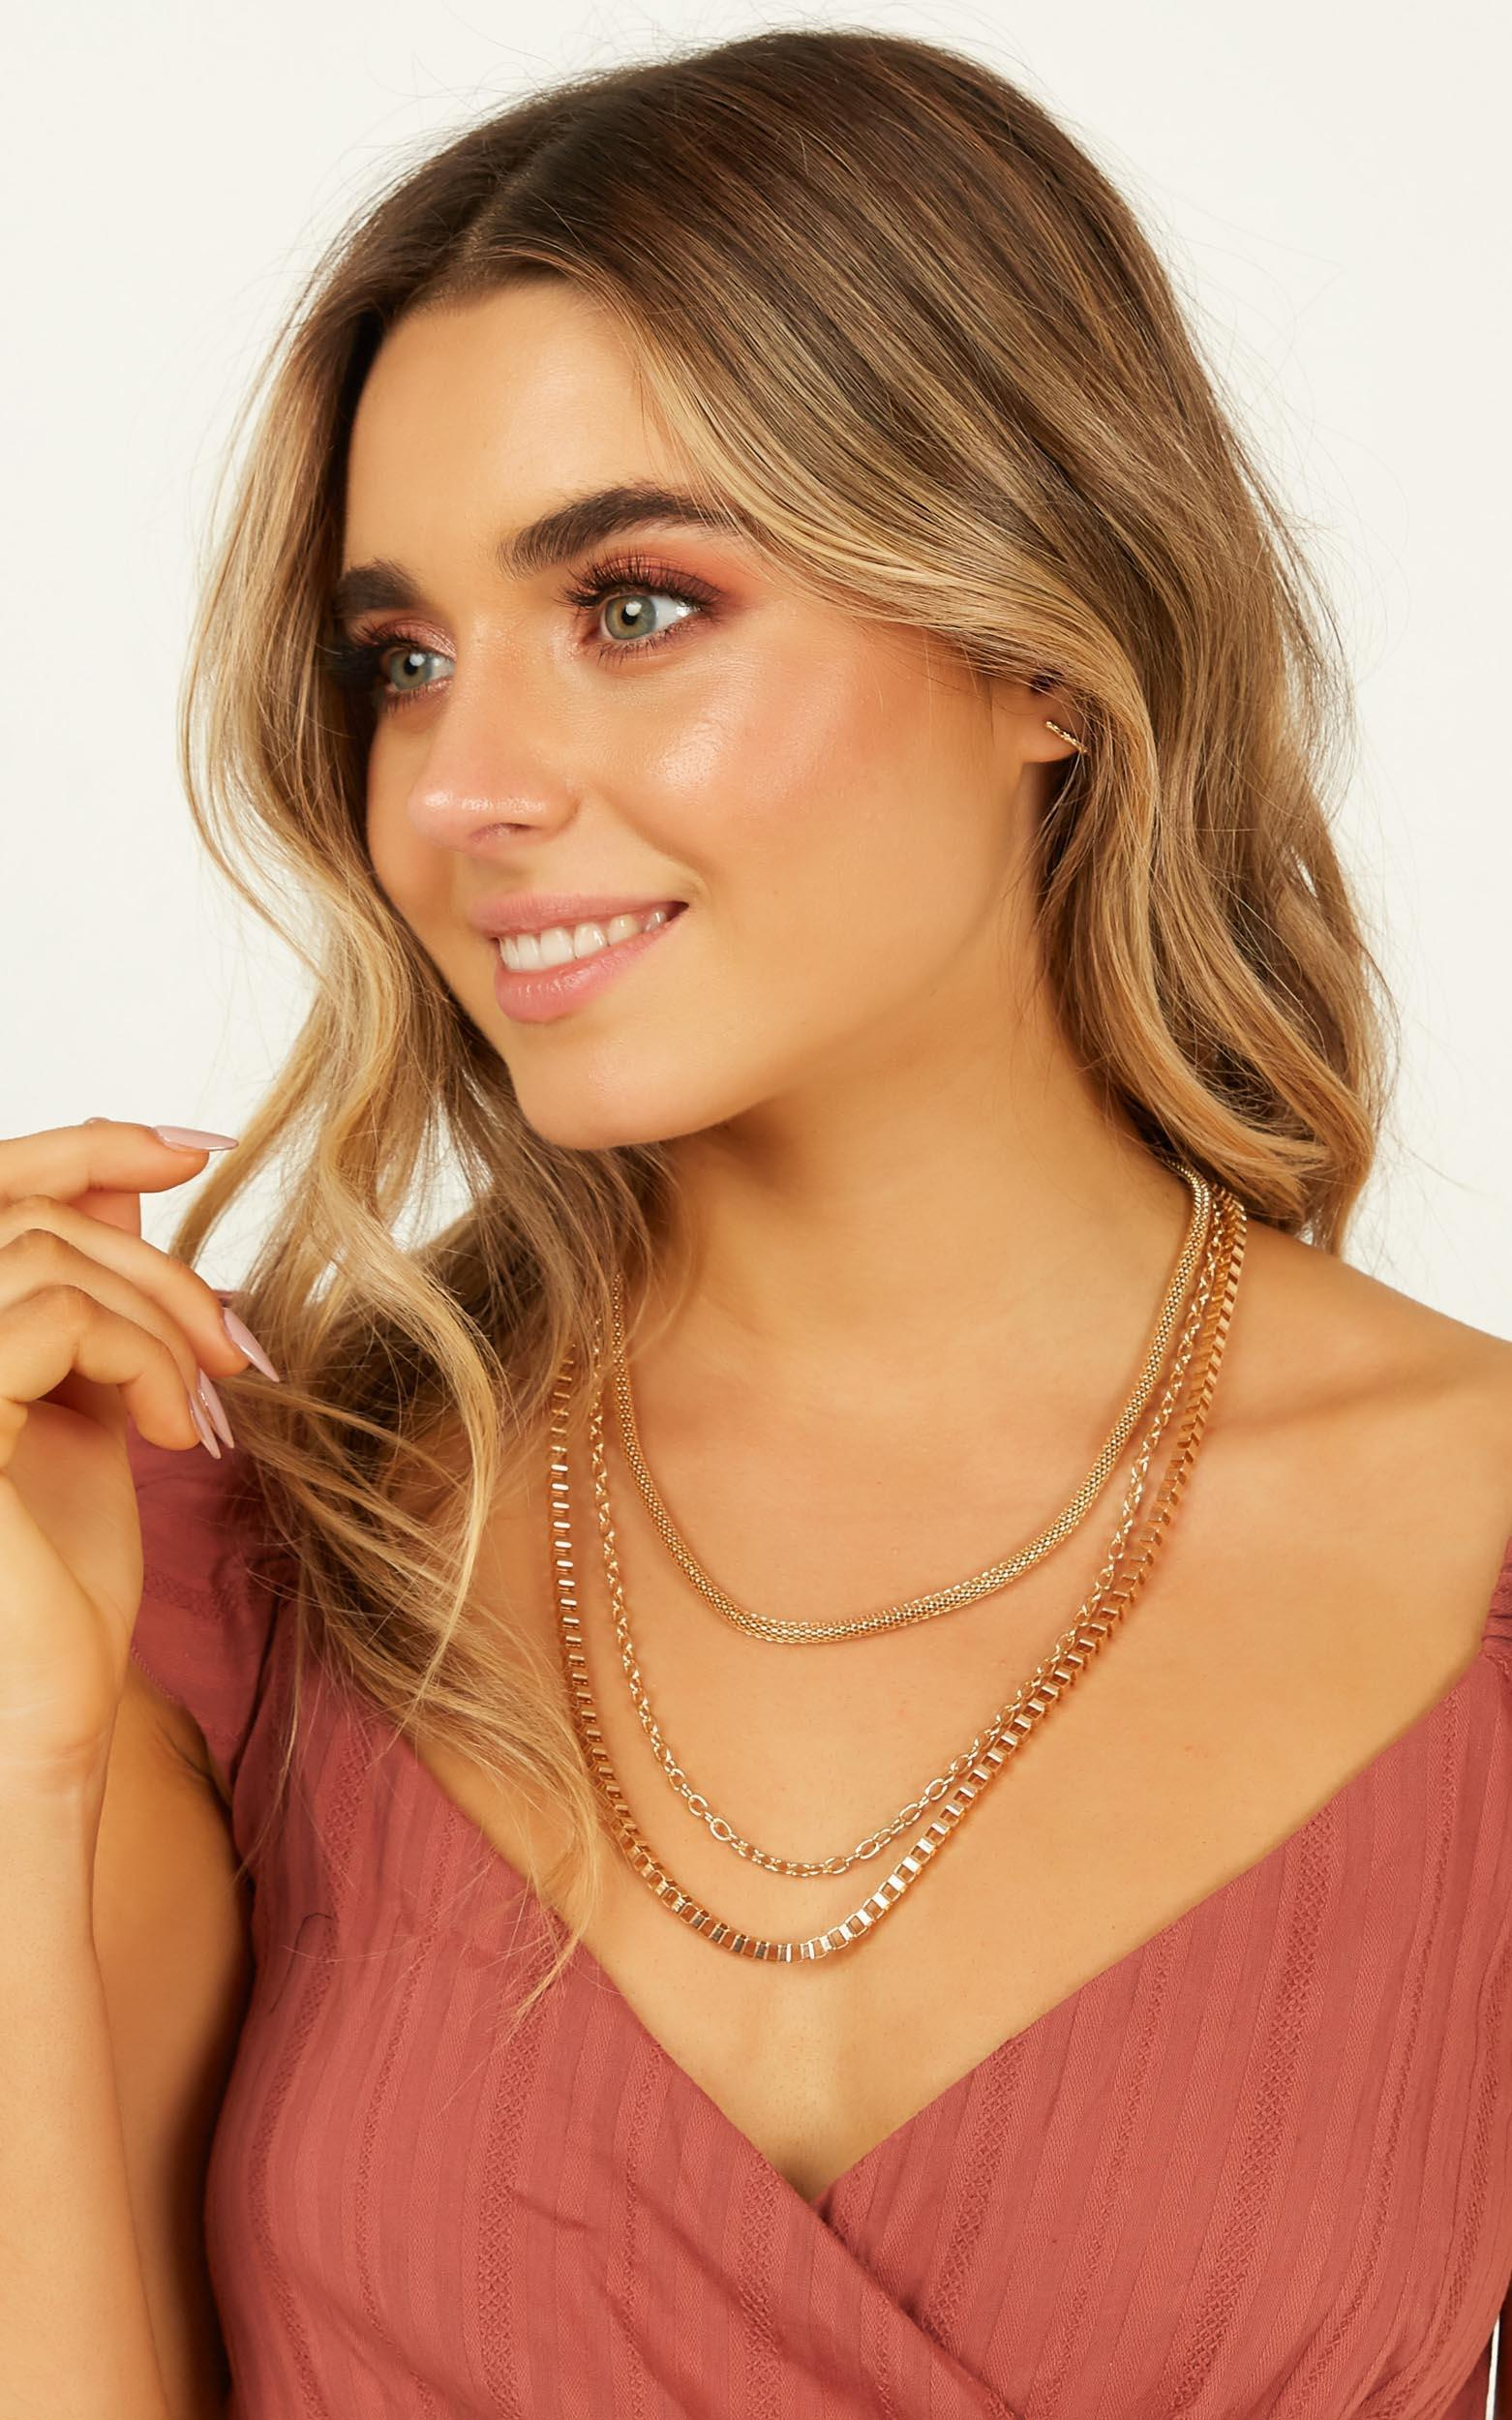 No More Feels Layered Necklace In Gold, , hi-res image number null